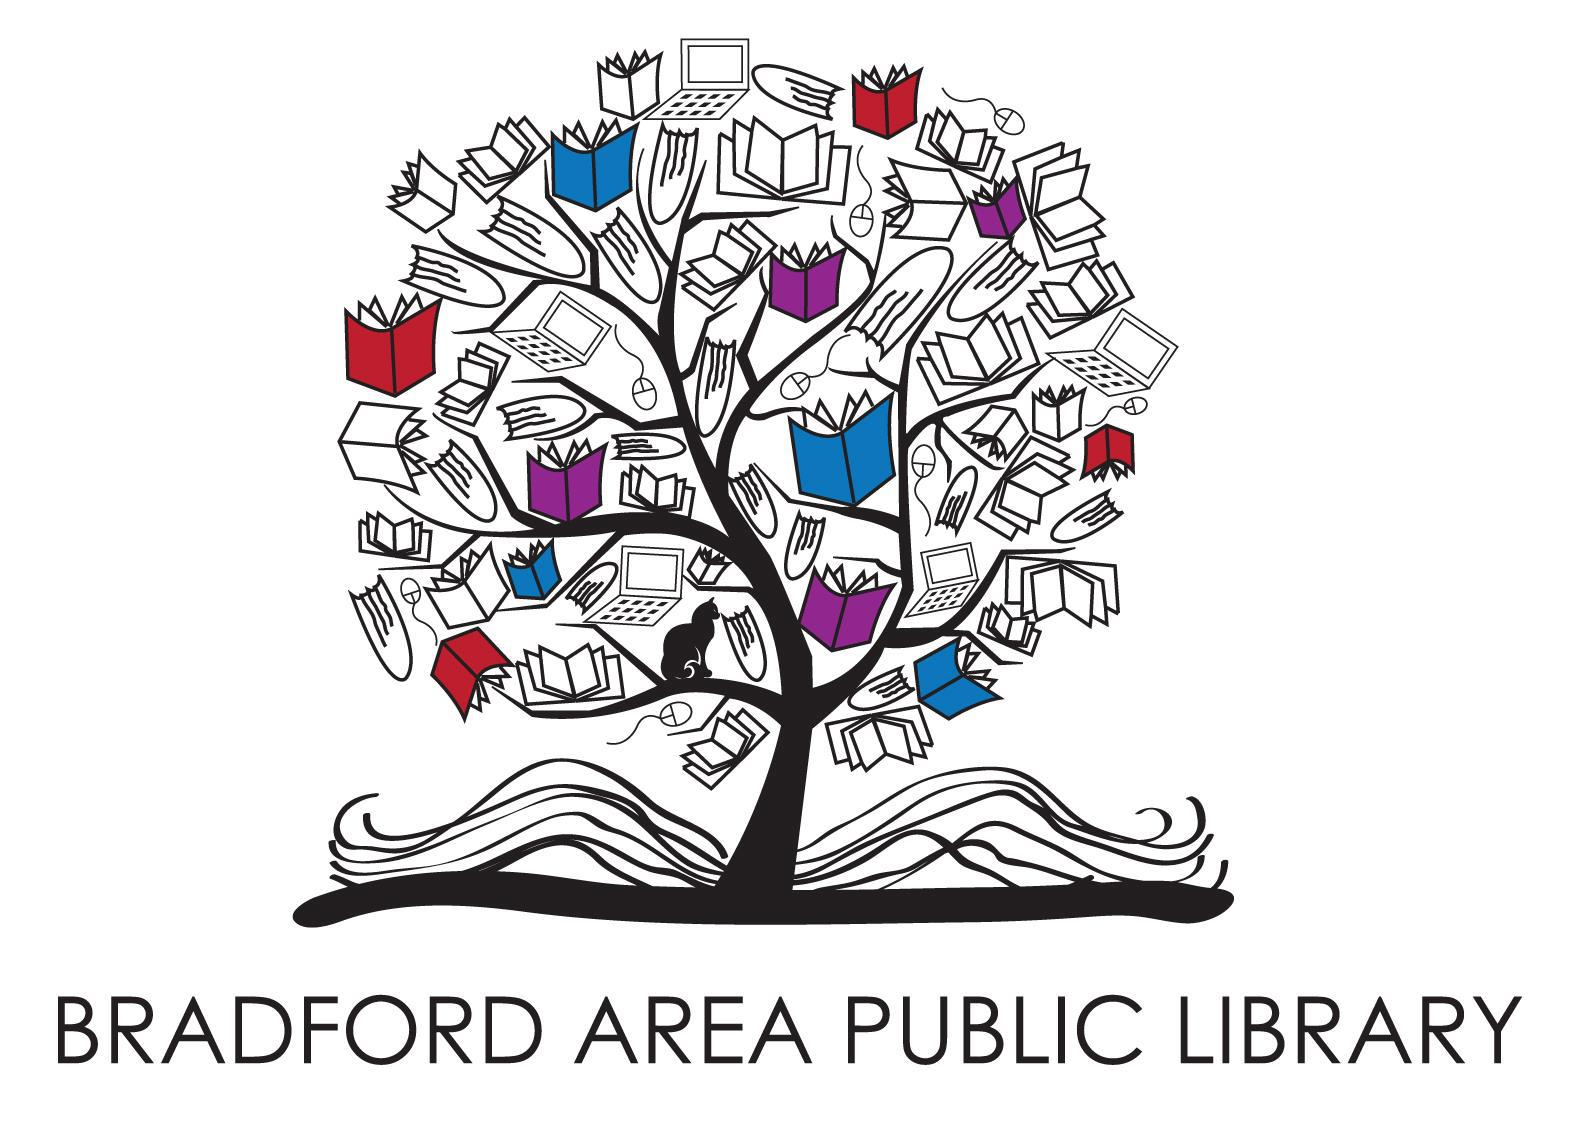 New Library Logo With Words